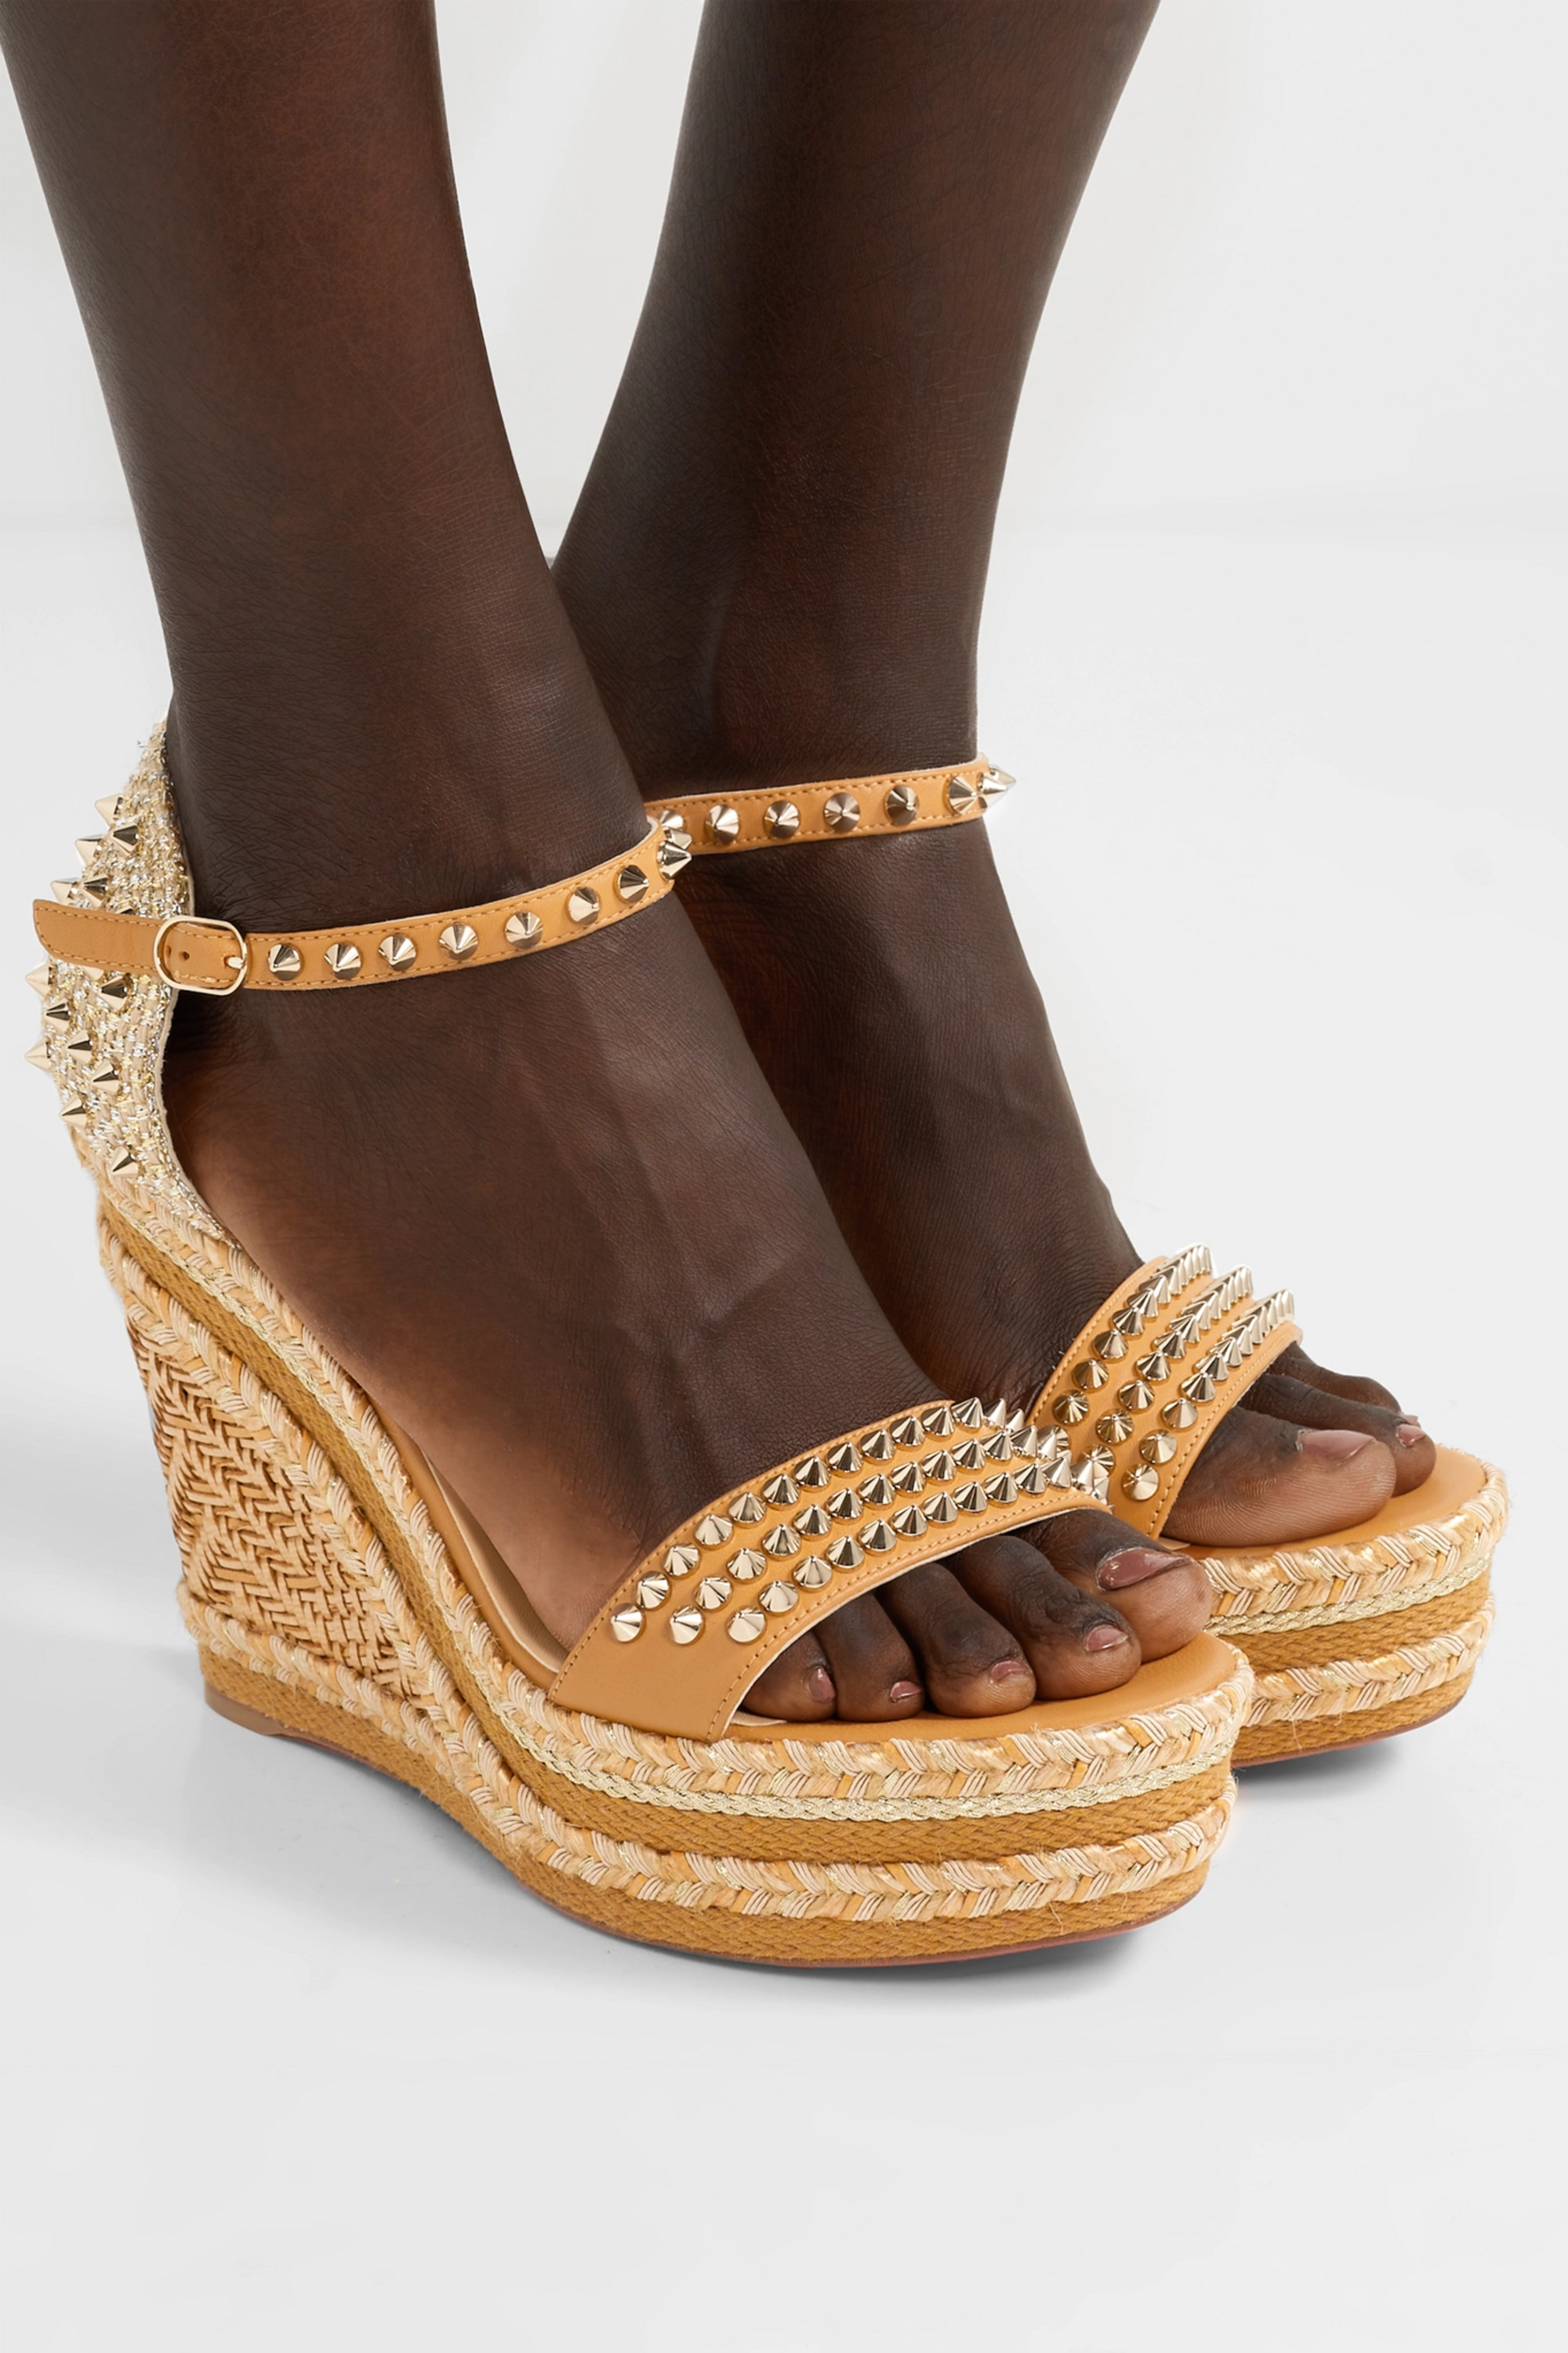 Christian Louboutin Madmonica 120 spiked raffia and leather espadrille wedge sandals